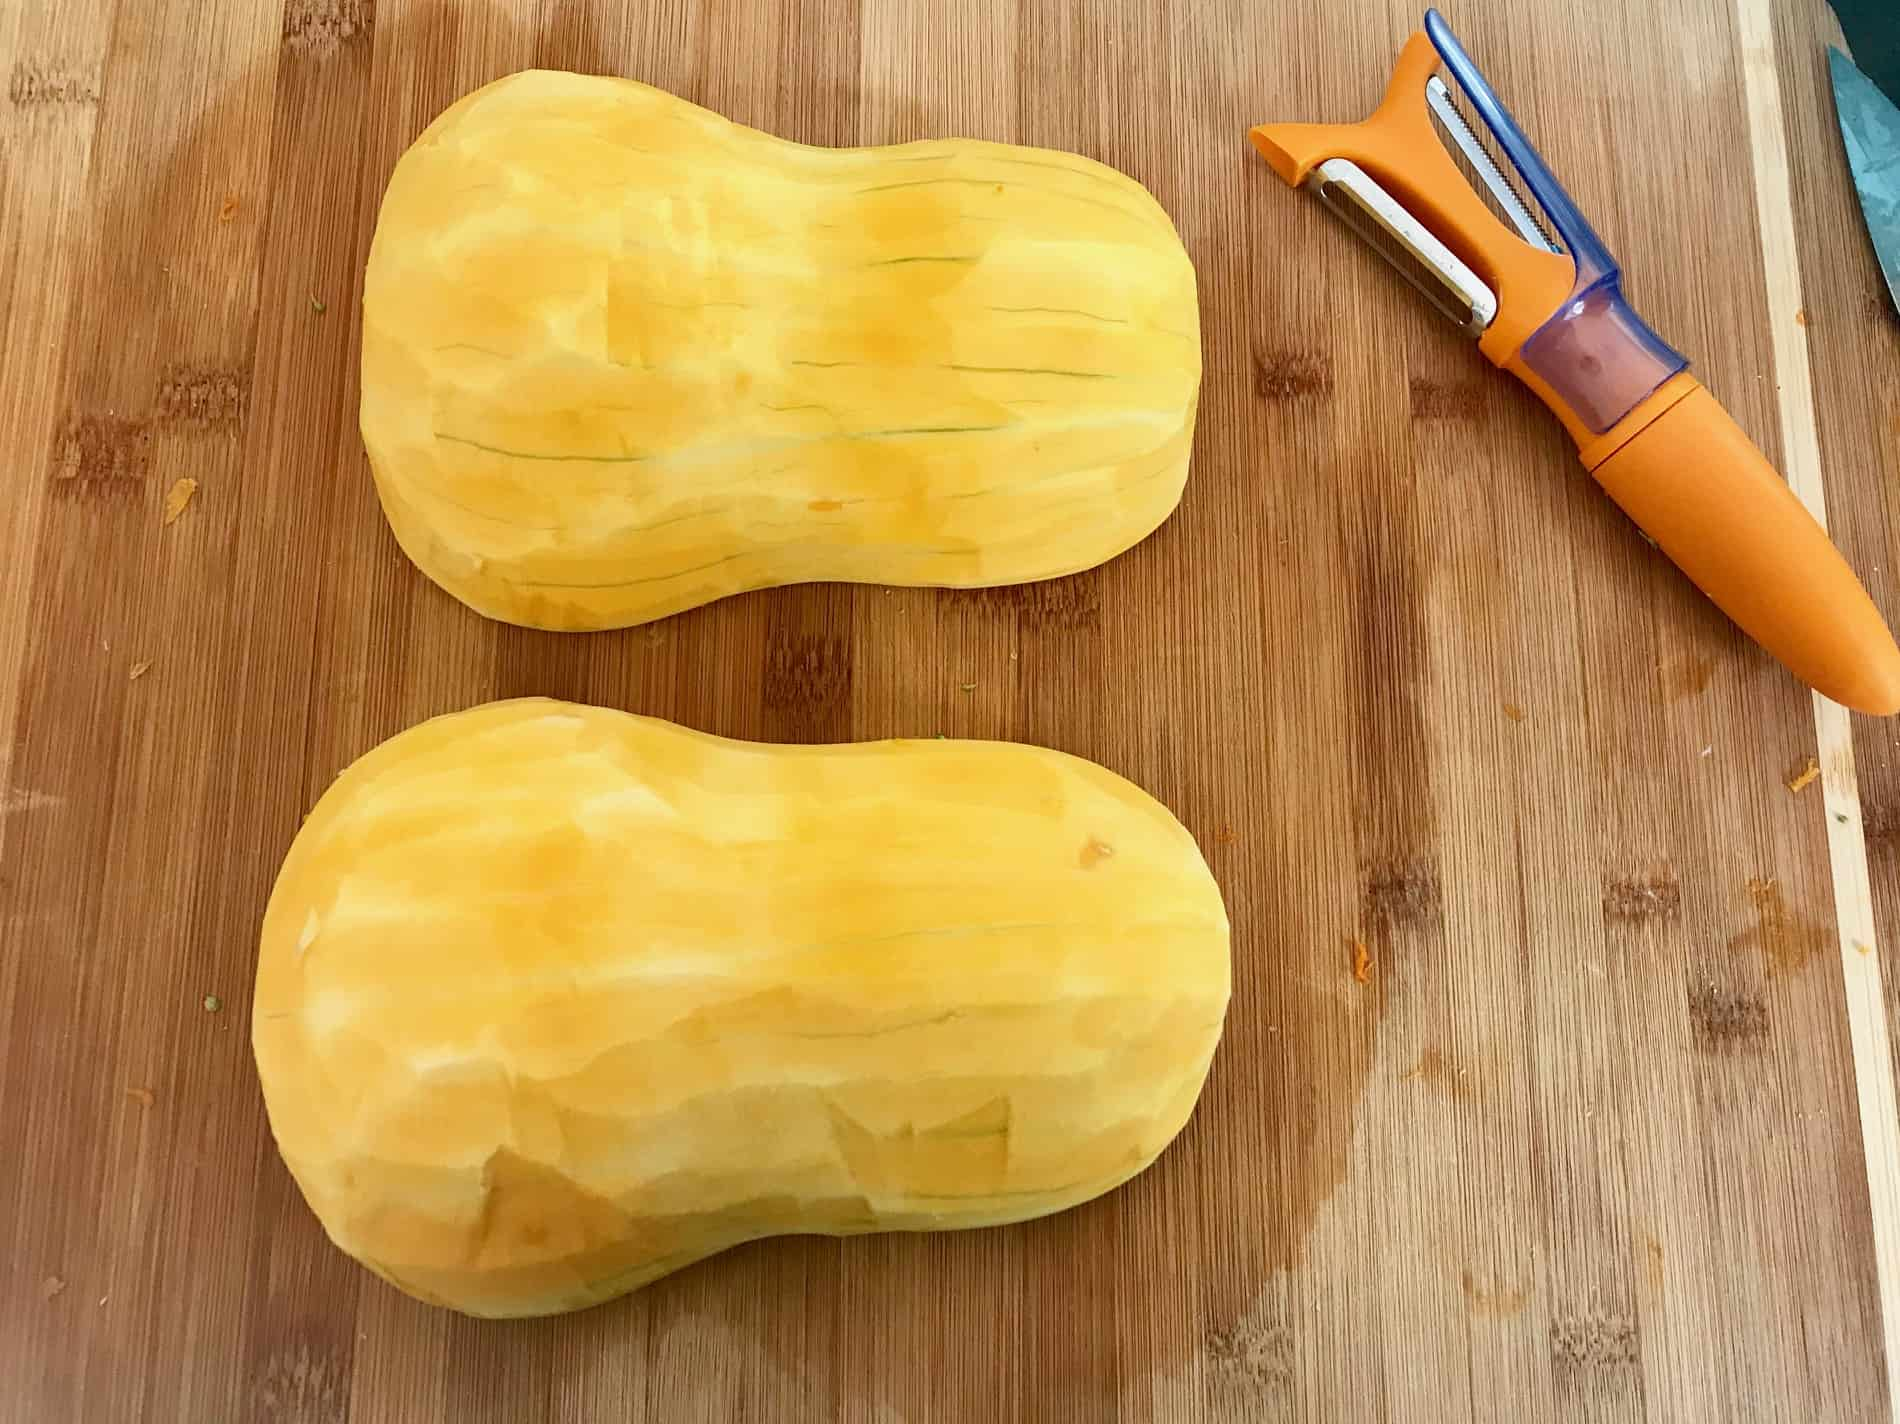 Butternut squash on cutting board cut in half with skin removed